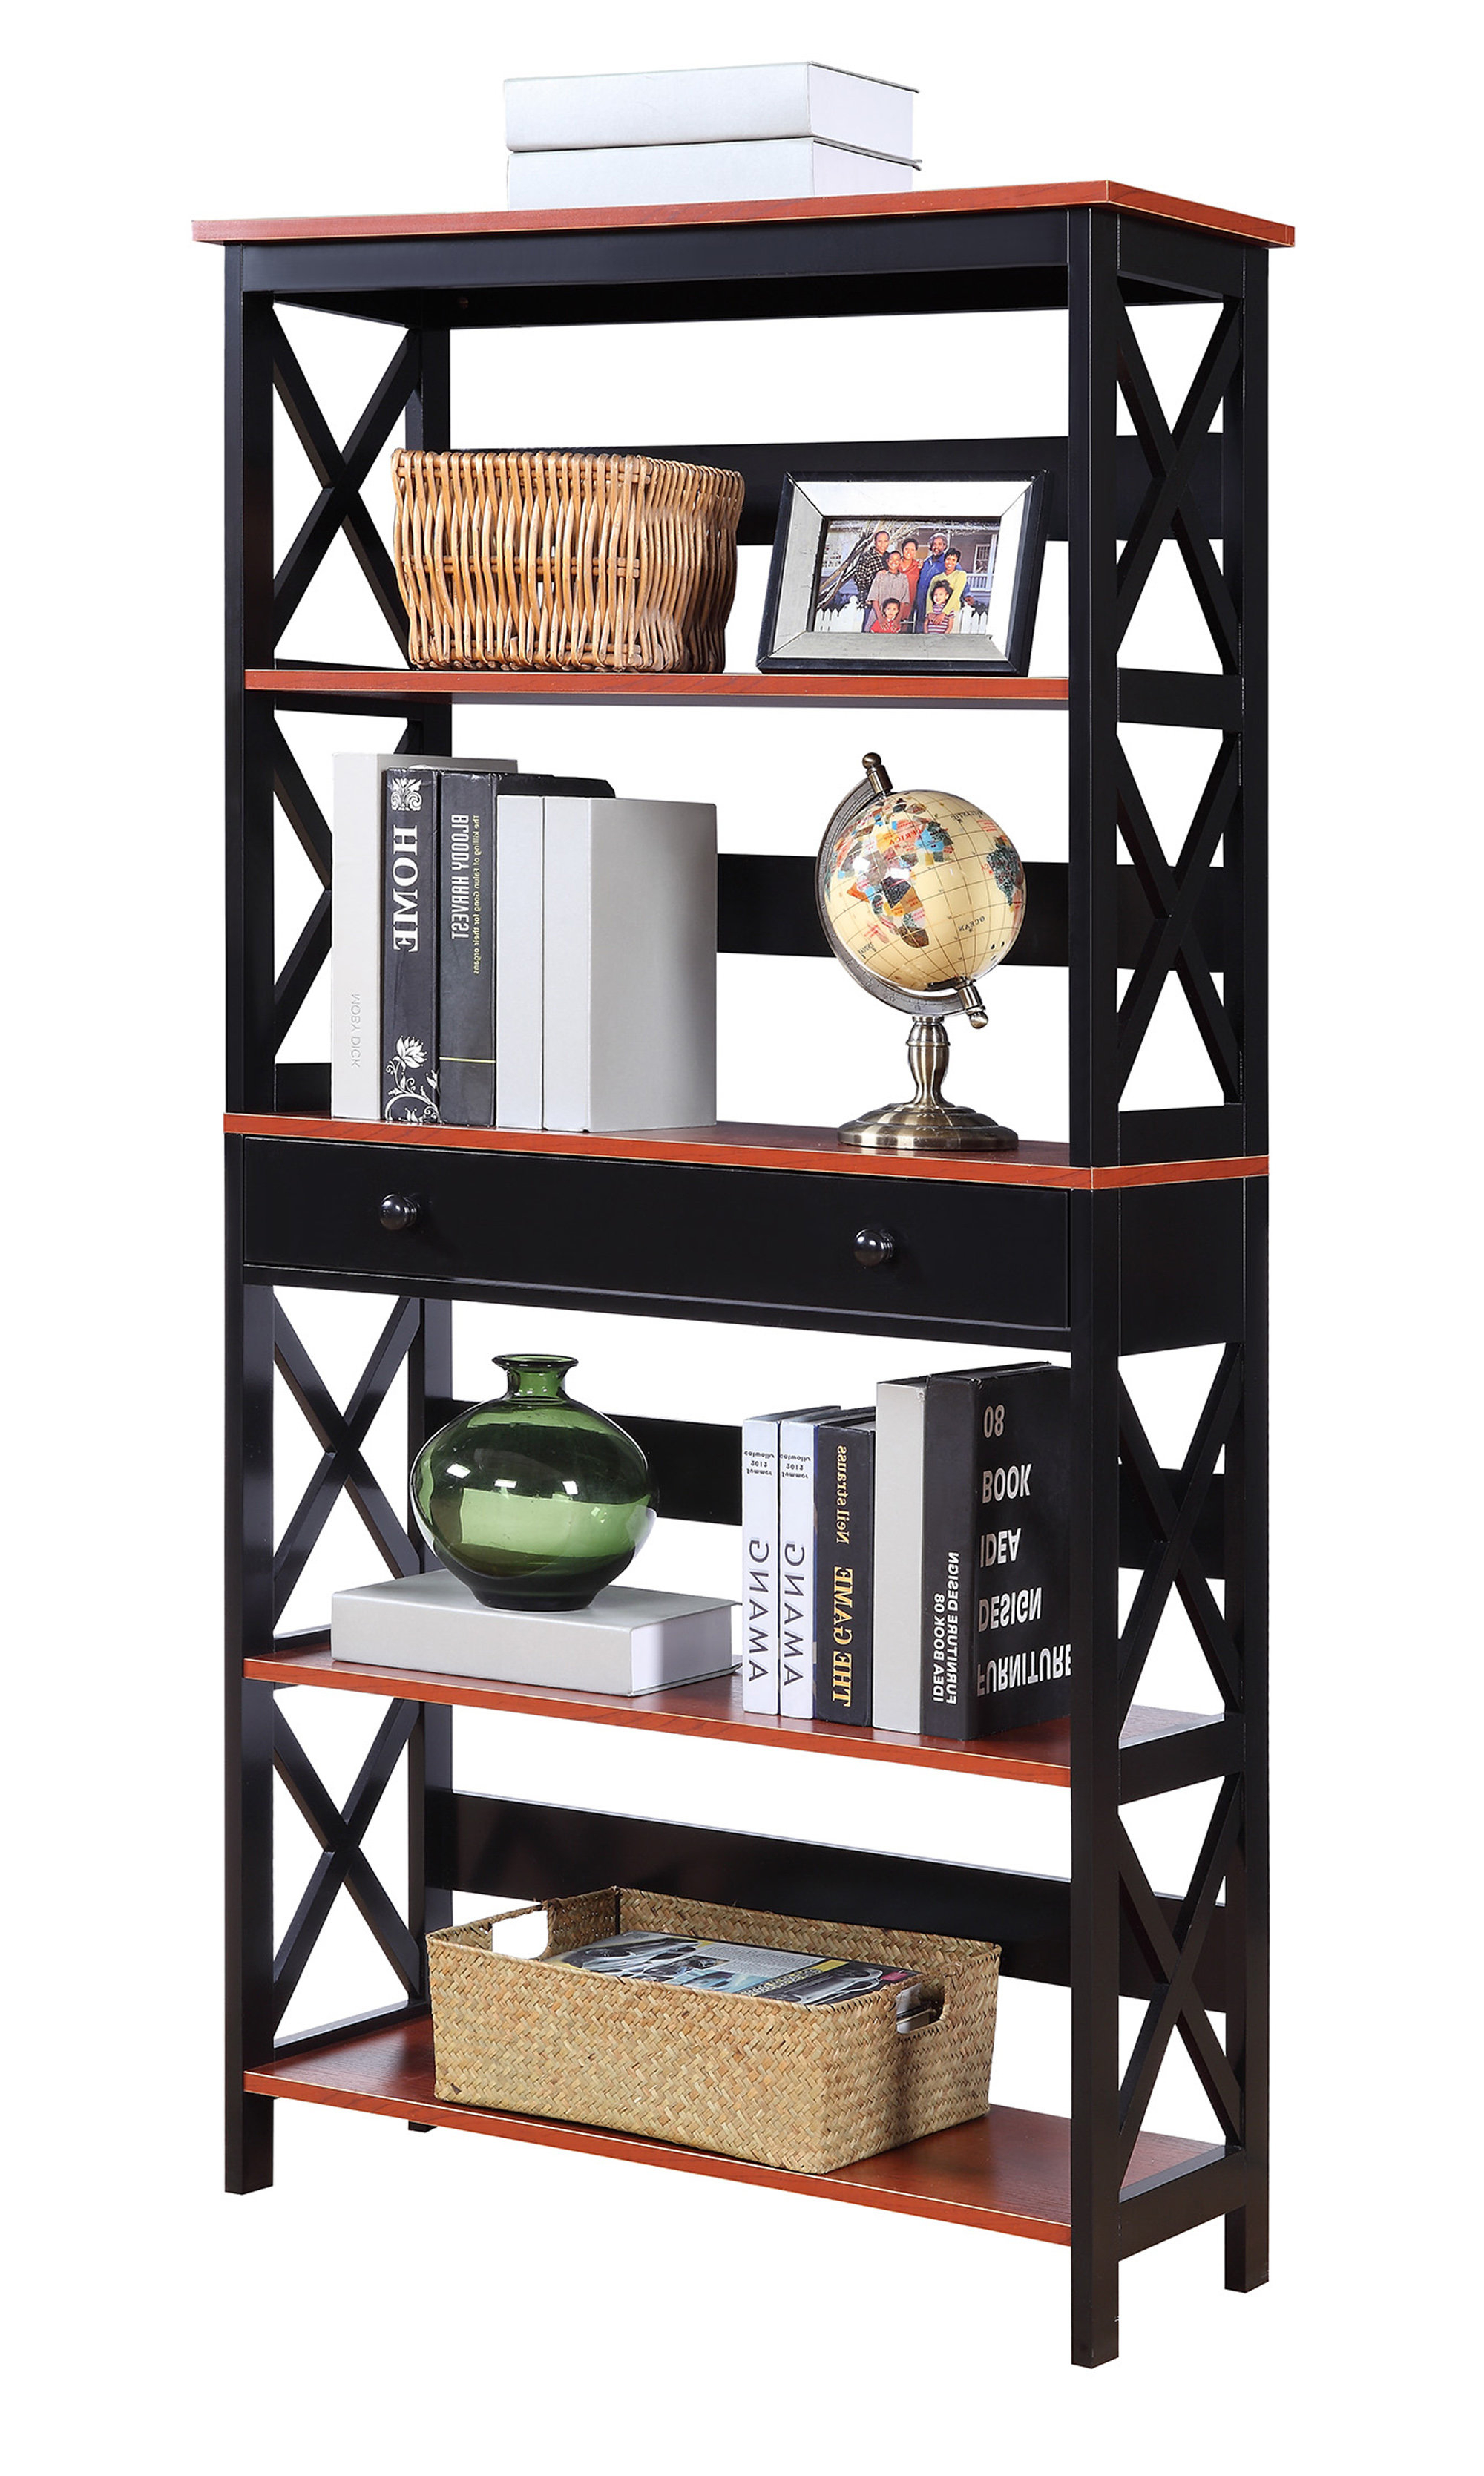 Beachcrest Home Gracelynn 5 Tier Etagere Bookcase Pertaining To Fashionable Gracelynn 5 Tier Etagere Bookcases (Gallery 10 of 20)